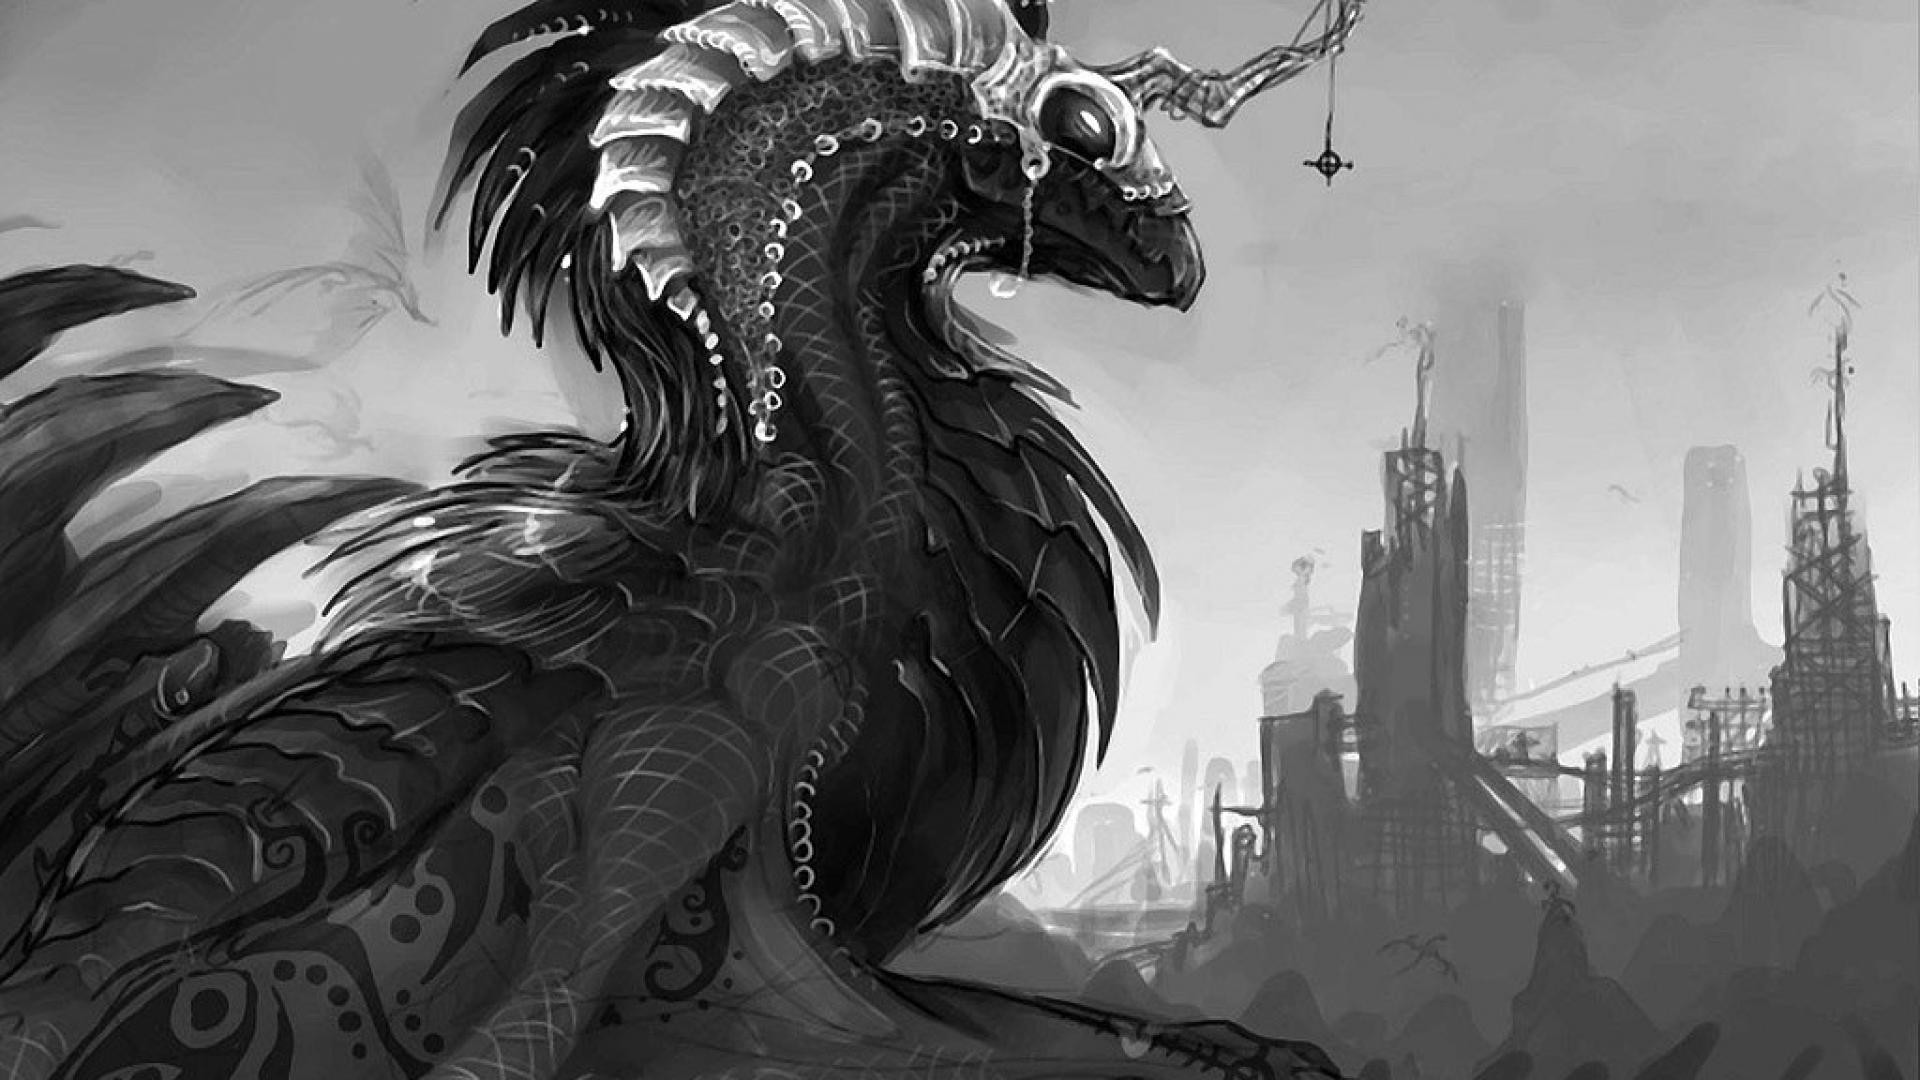 Black dragon wallpapers 65 images - Dragon backgrounds 1920x1080 ...